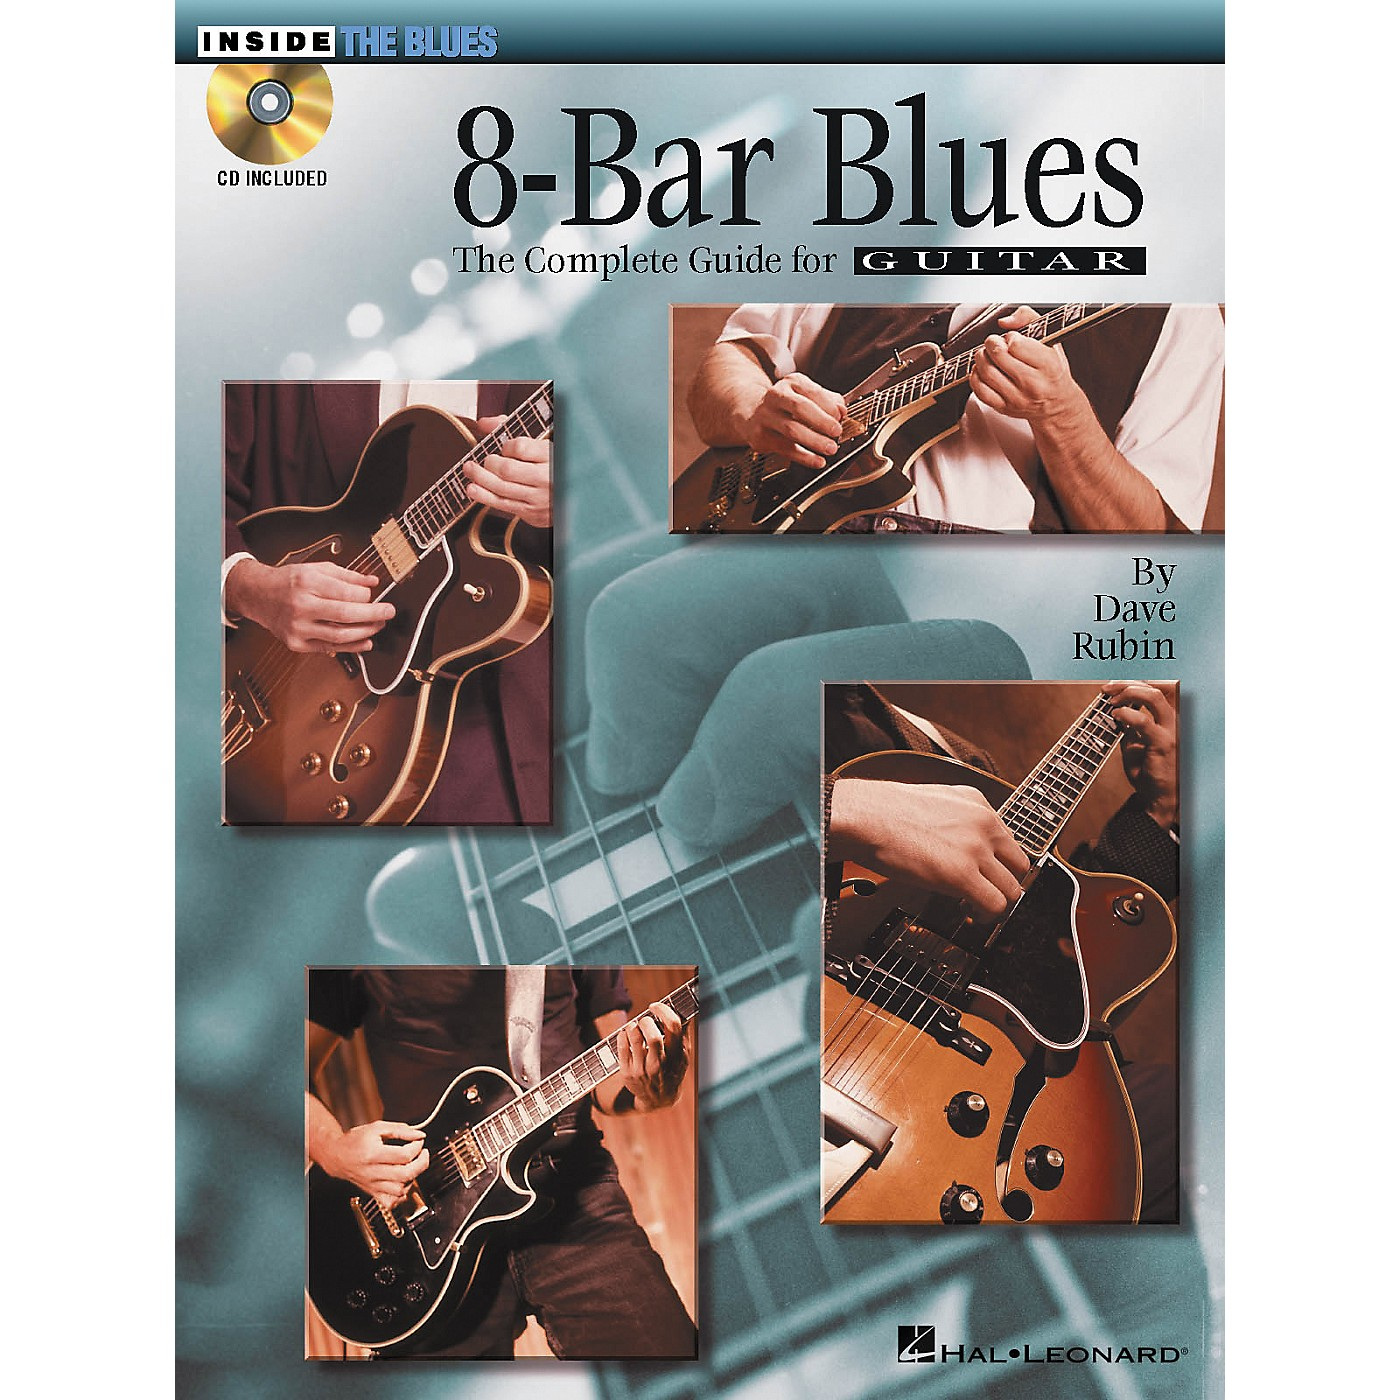 Hal Leonard 8-Bar Blues: The Complete Guide for Guitarists - Inside The Blues Series (CD/Booklet) thumbnail